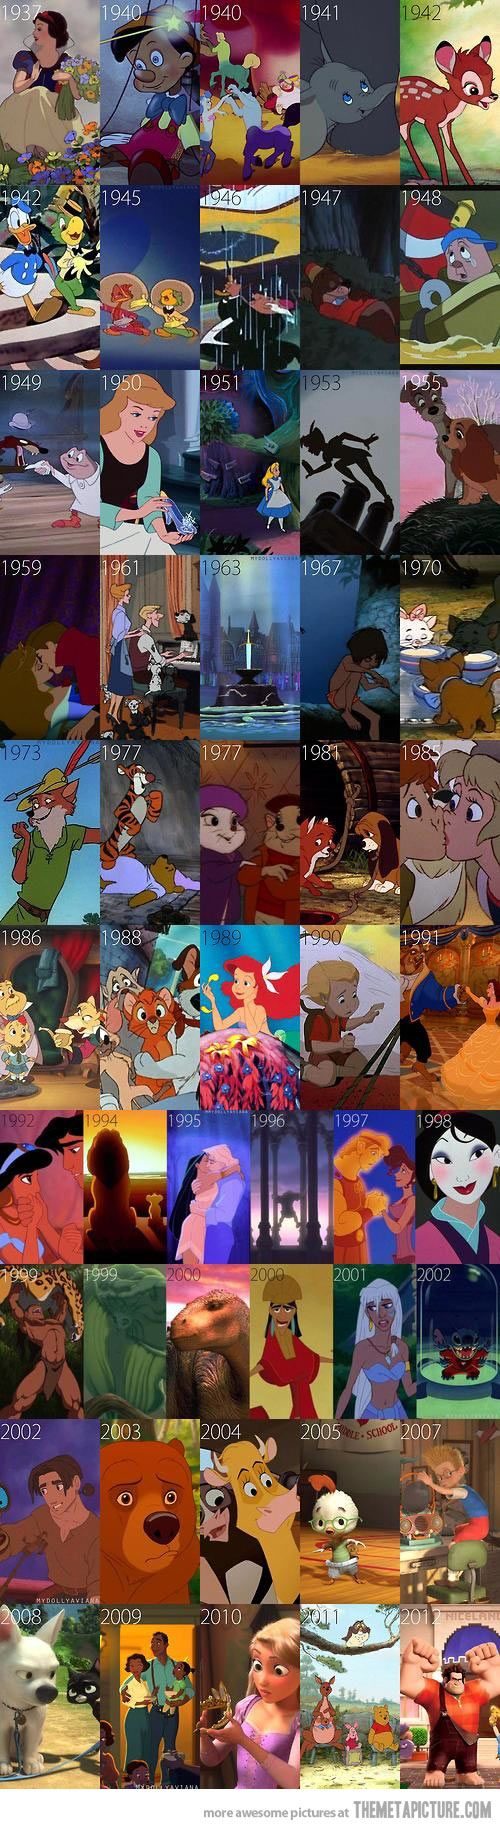 Disney Animated Movies From 1937 to 2012.